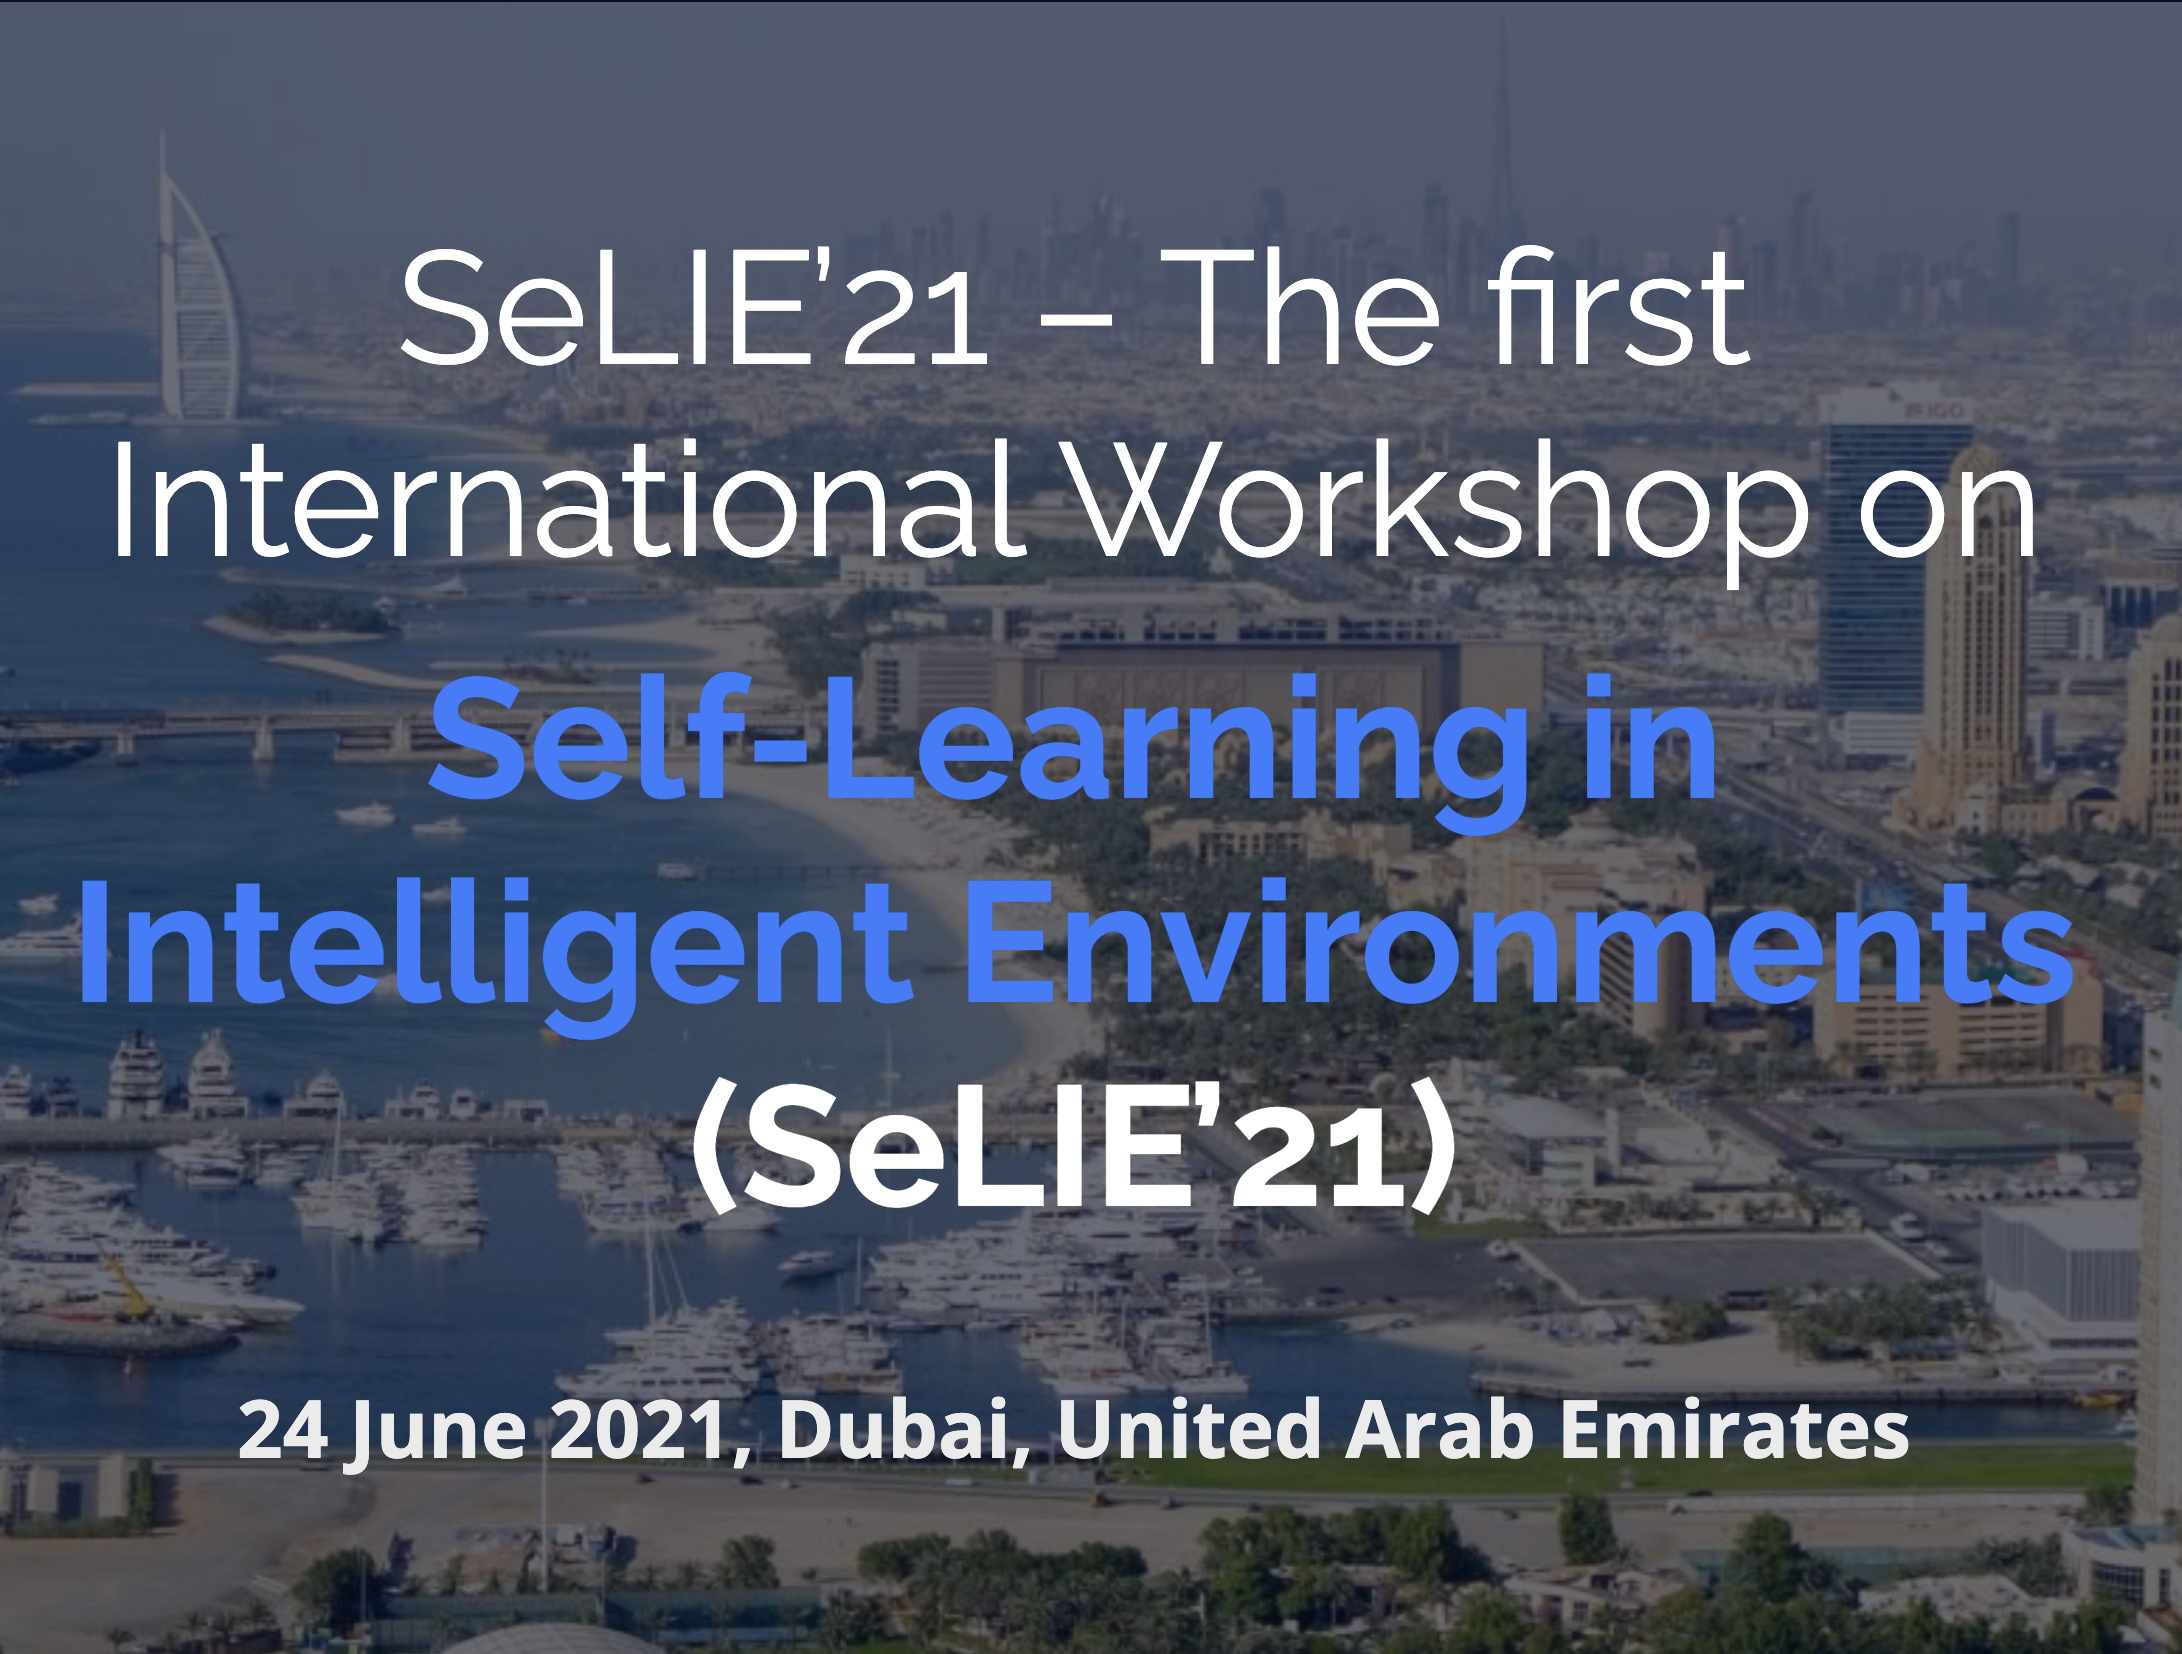 SeLIE'21-The First International Workshop On Self- Learning In Intelligent Environments